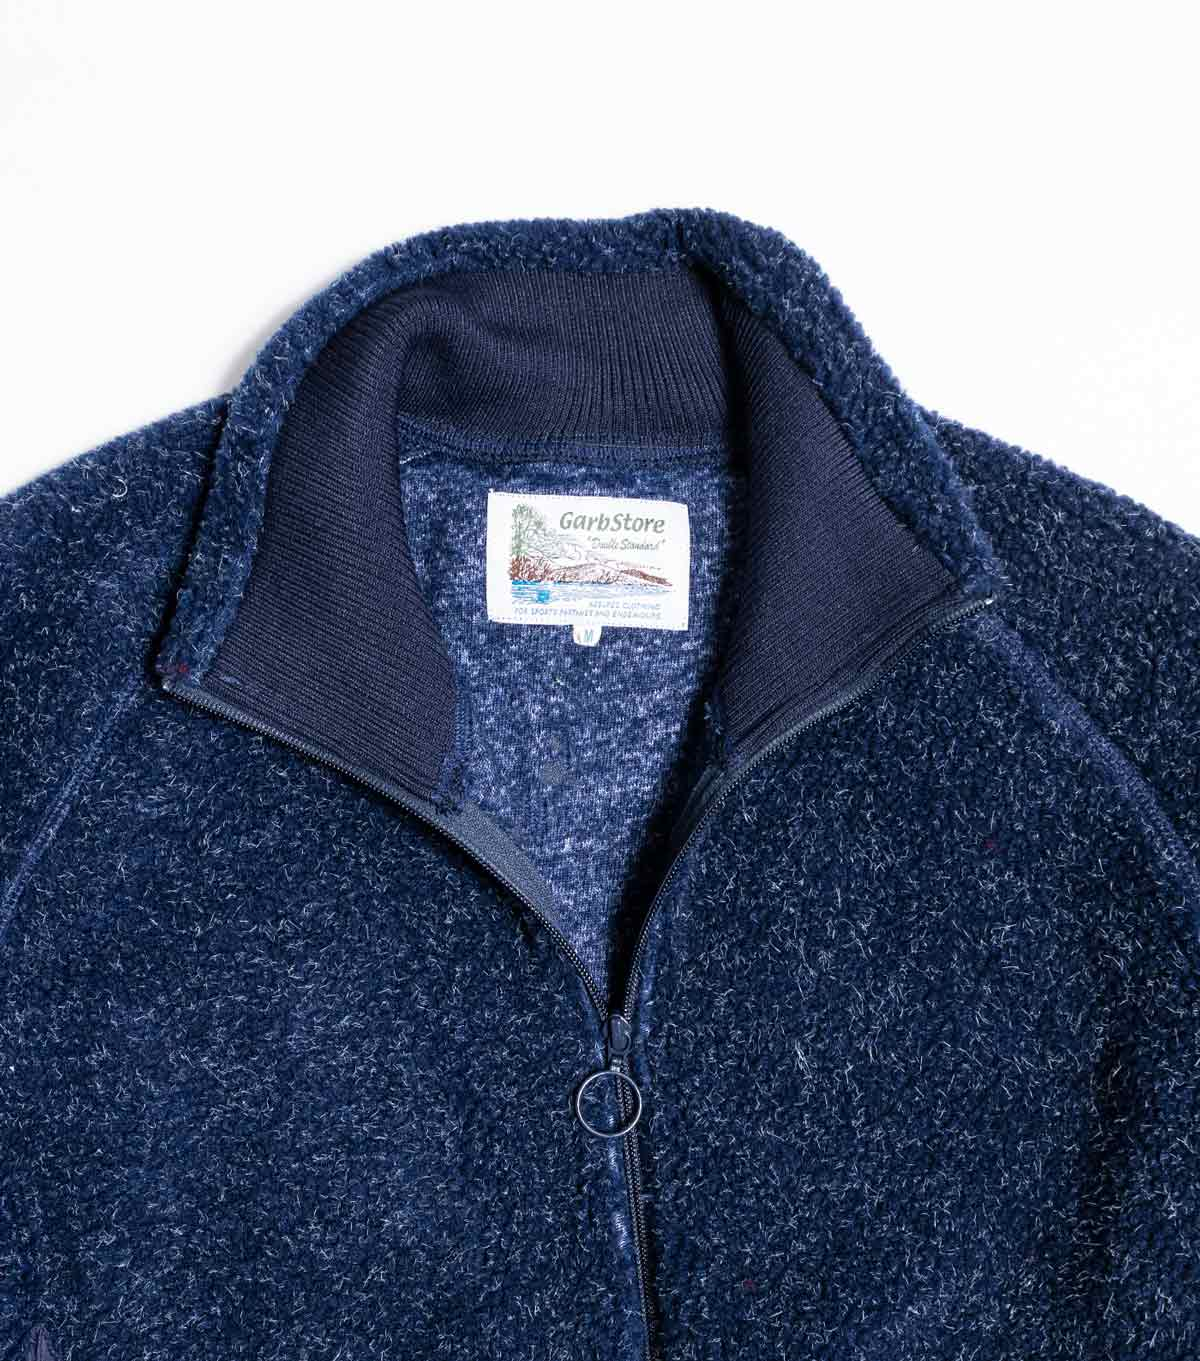 Garbstore Alley Fleece Jacket - Navy